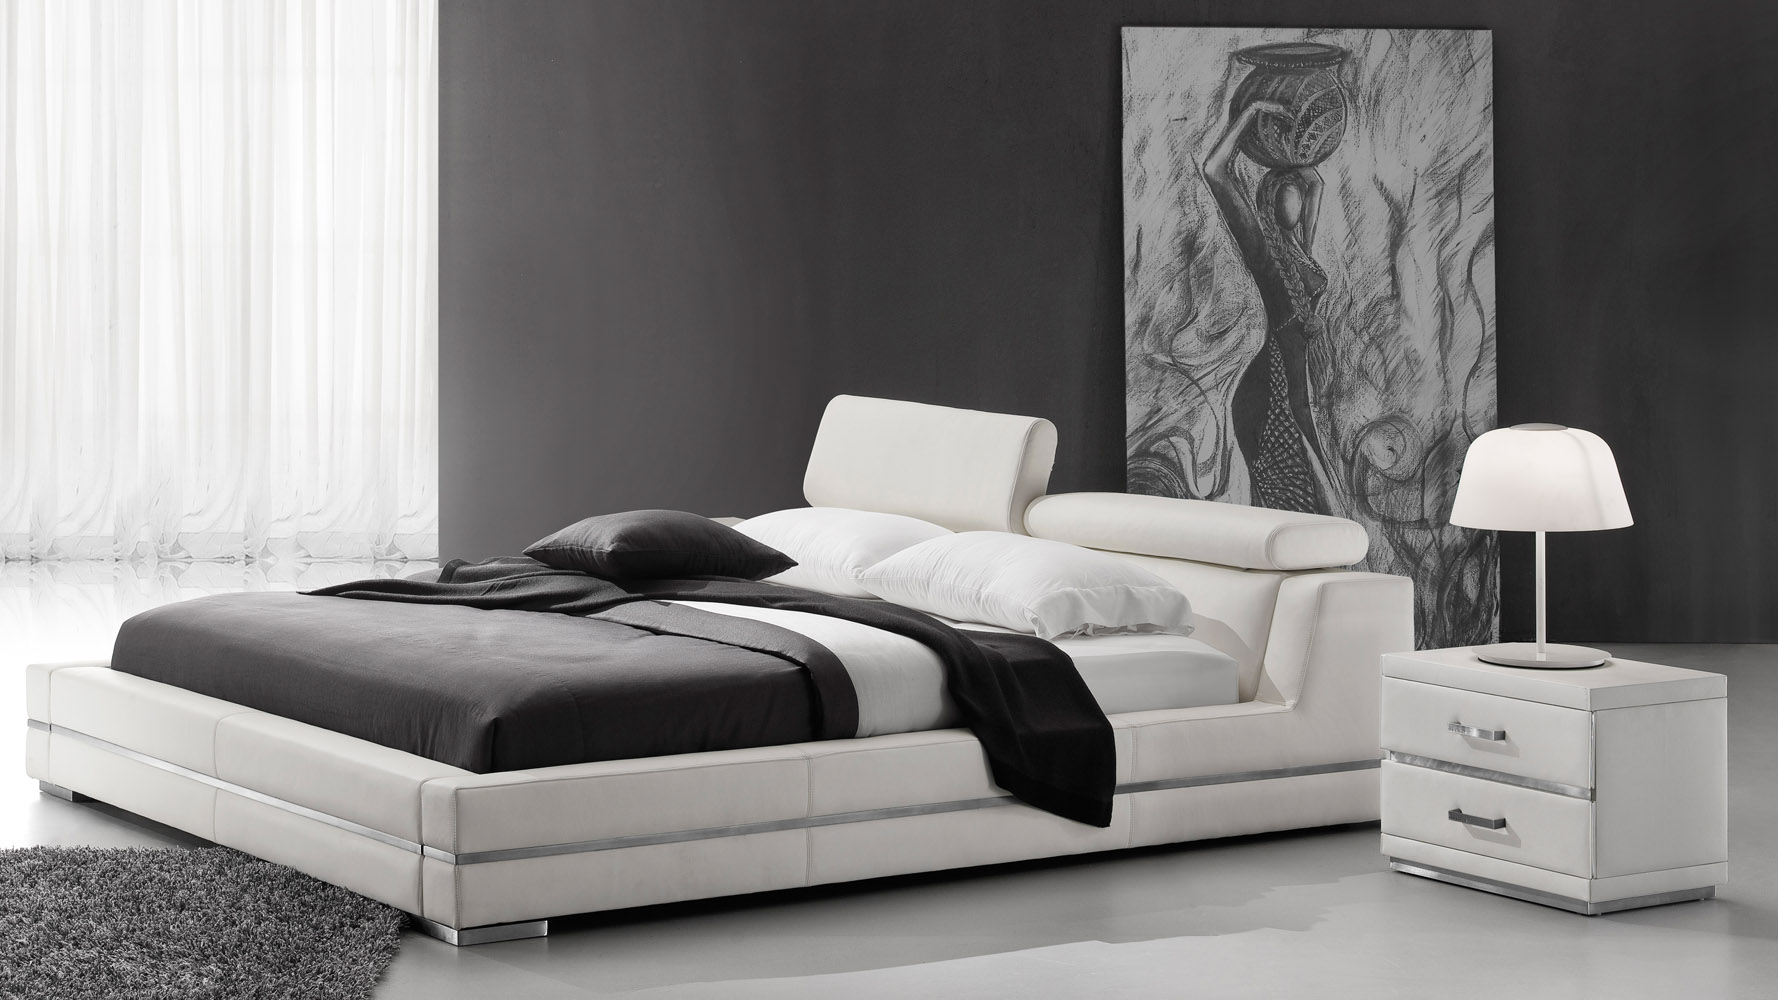 Modern Bedroom Furniture & Accents - Contemporary Bedroom | Zuri ...